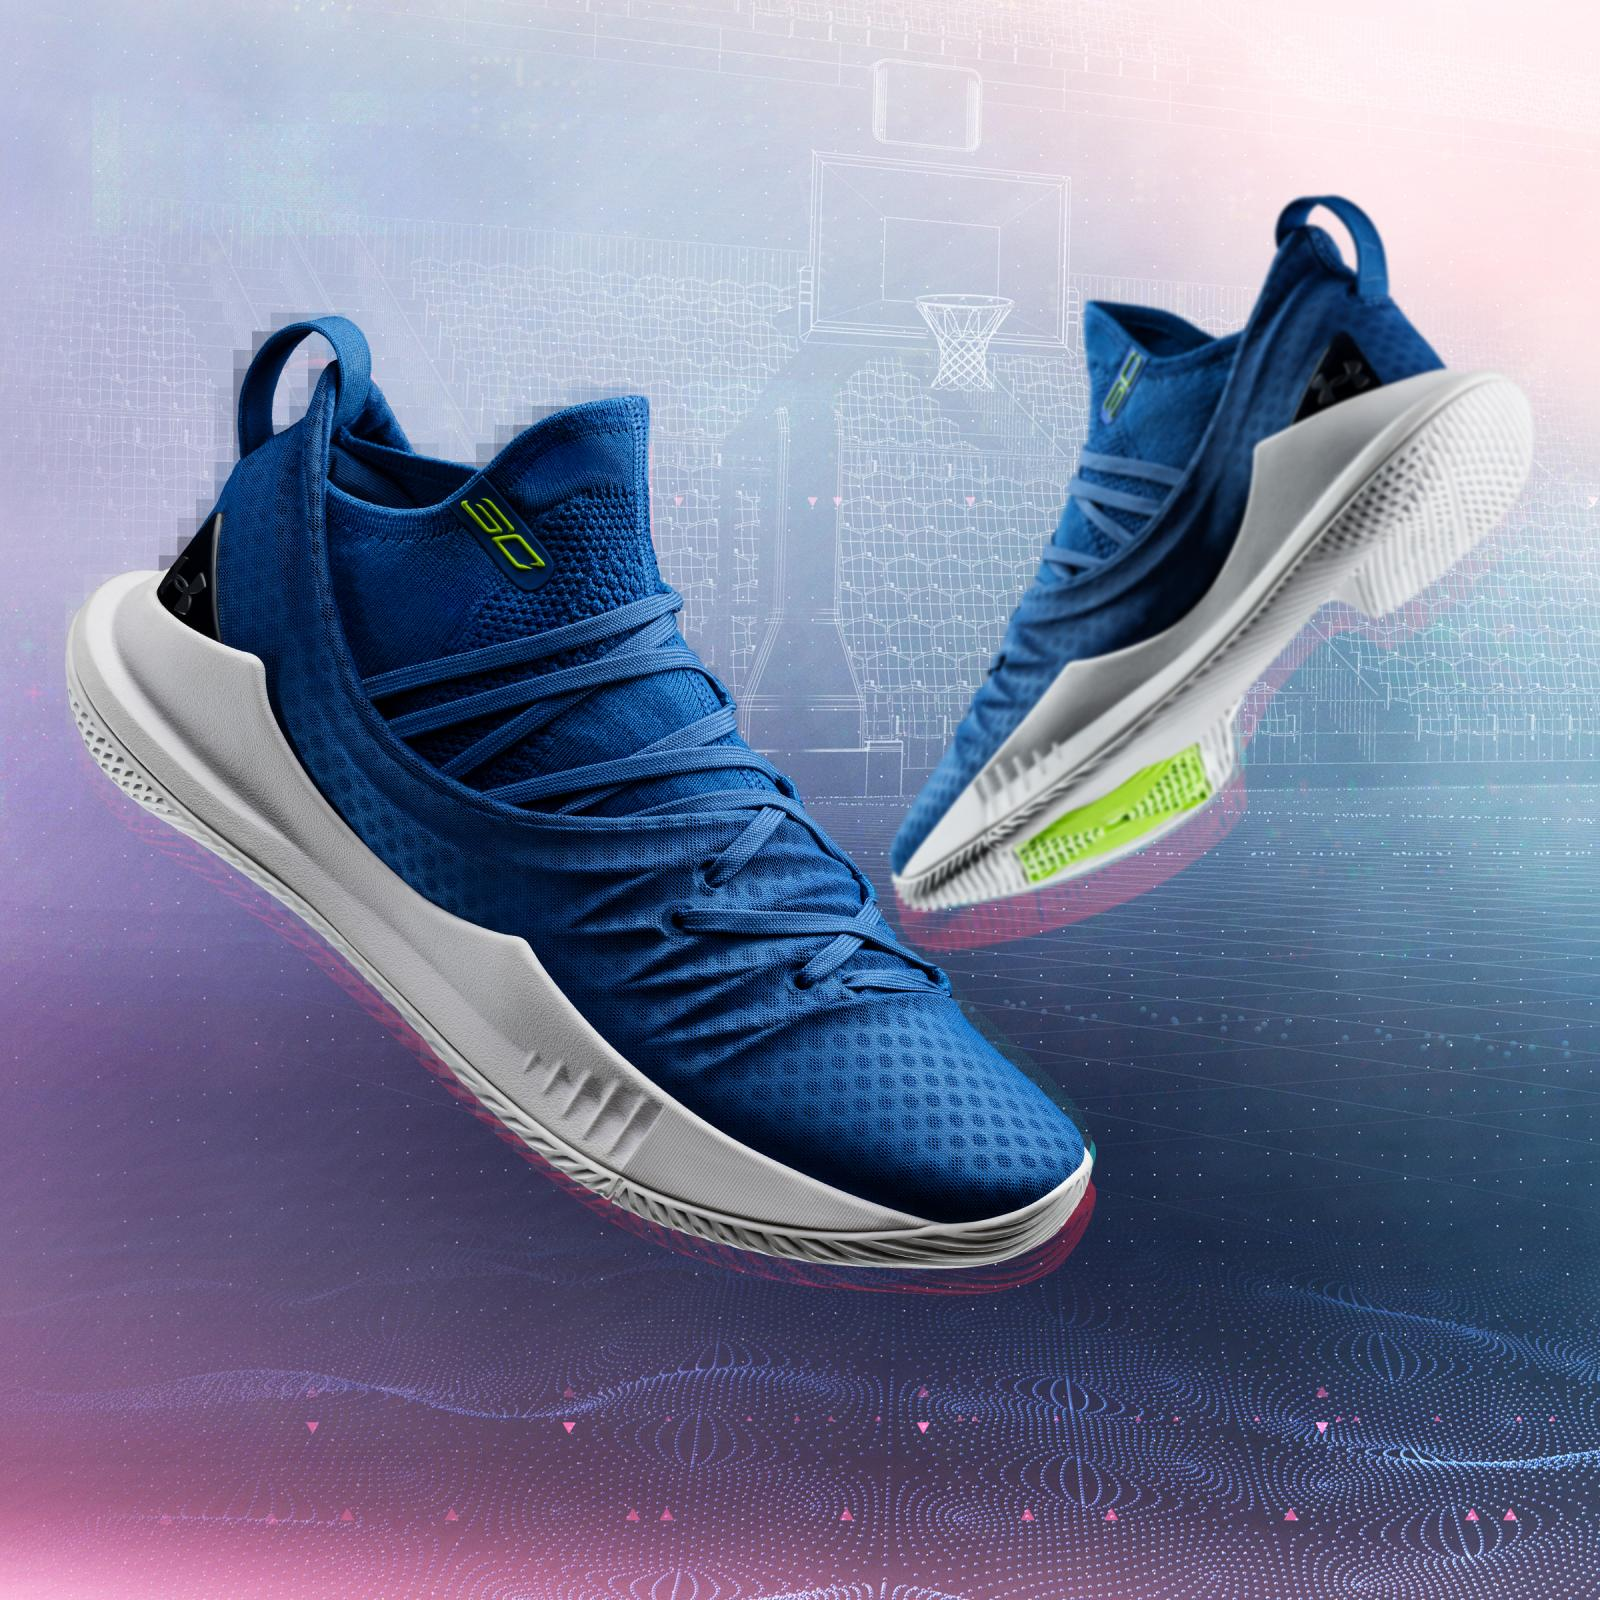 32432d6b9e82 Curry 5 Blue Colorway FW18